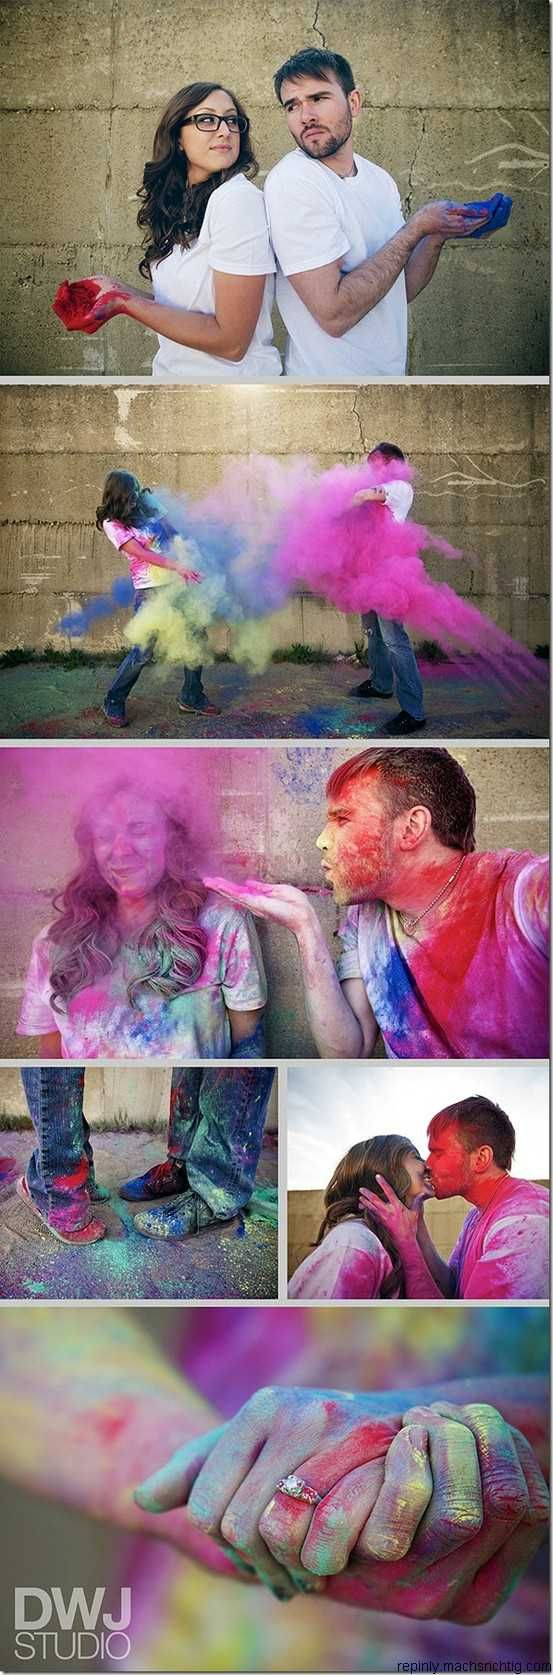 I would love to do this one day with my future fiance!!! :-) #EngagementPictures